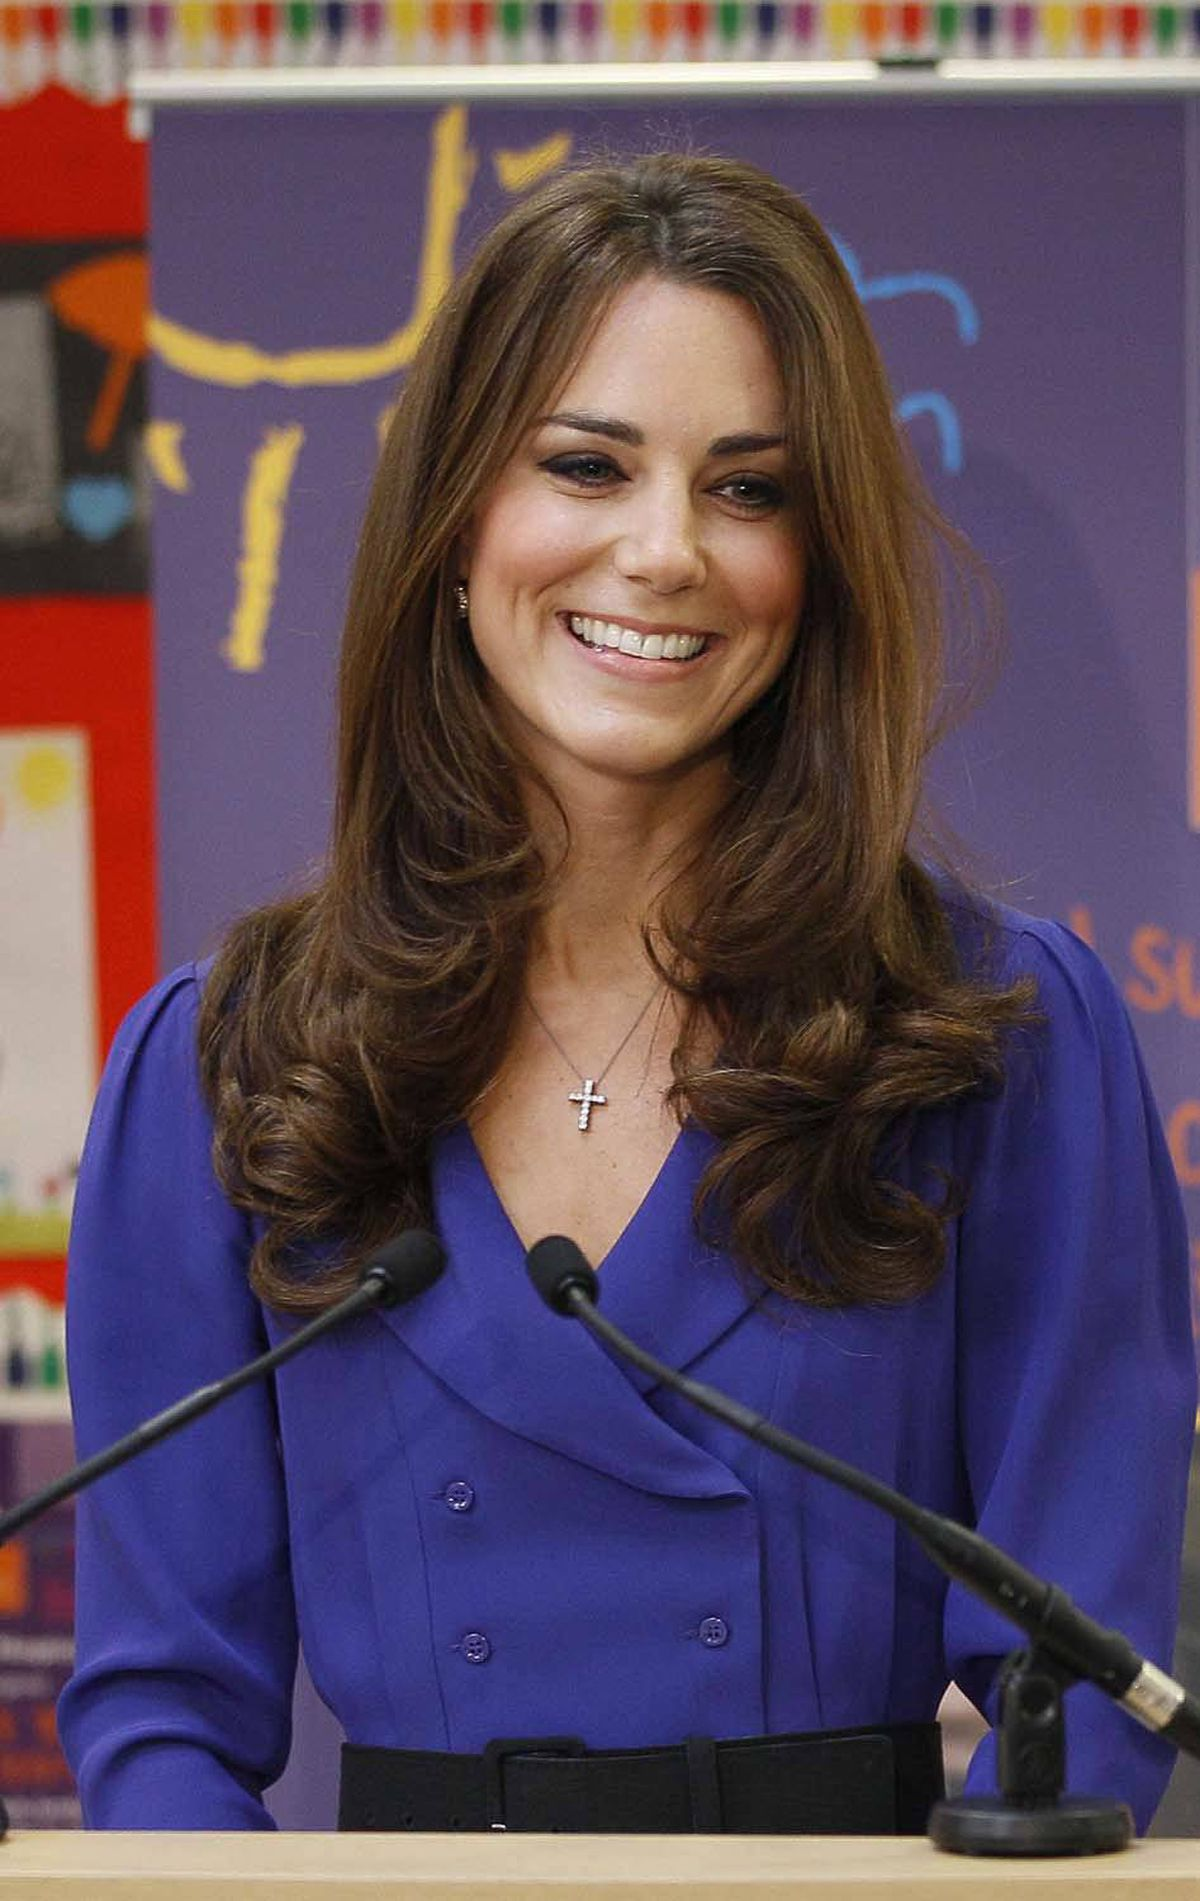 The Duchess dons a Reiss dress dating back to 2008 for her first official speech on March 19 at the Treehouse in Ipswich, England.